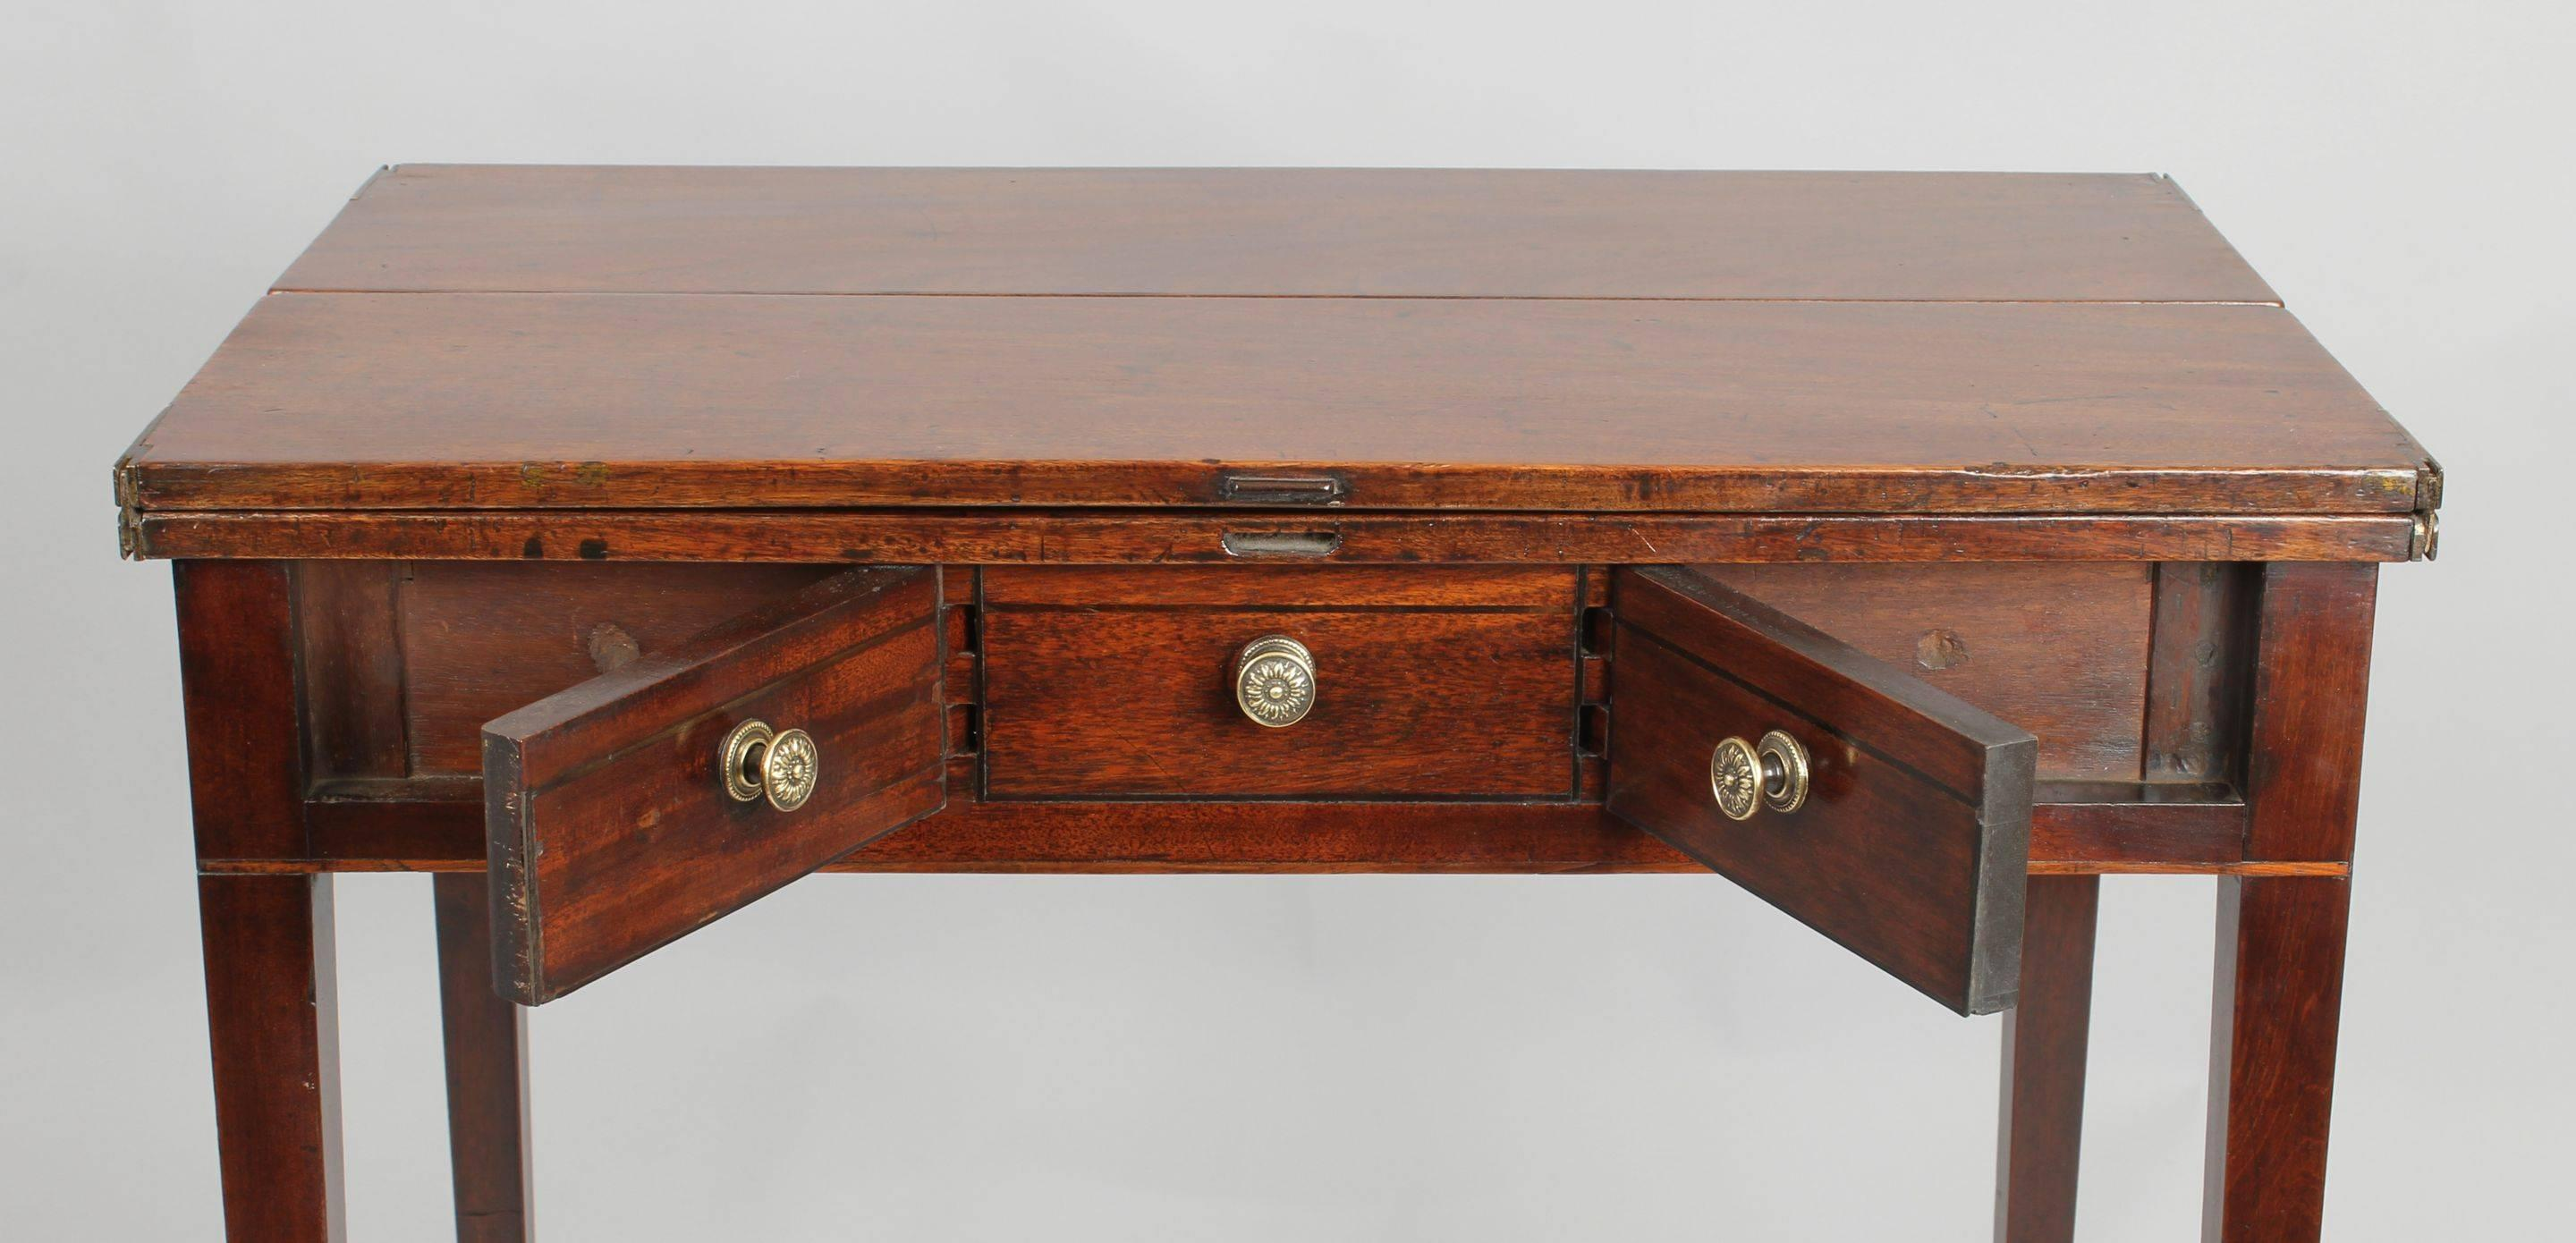 Unusual George III Period Mahogany Flap-Top 'Patience' Occasional Table